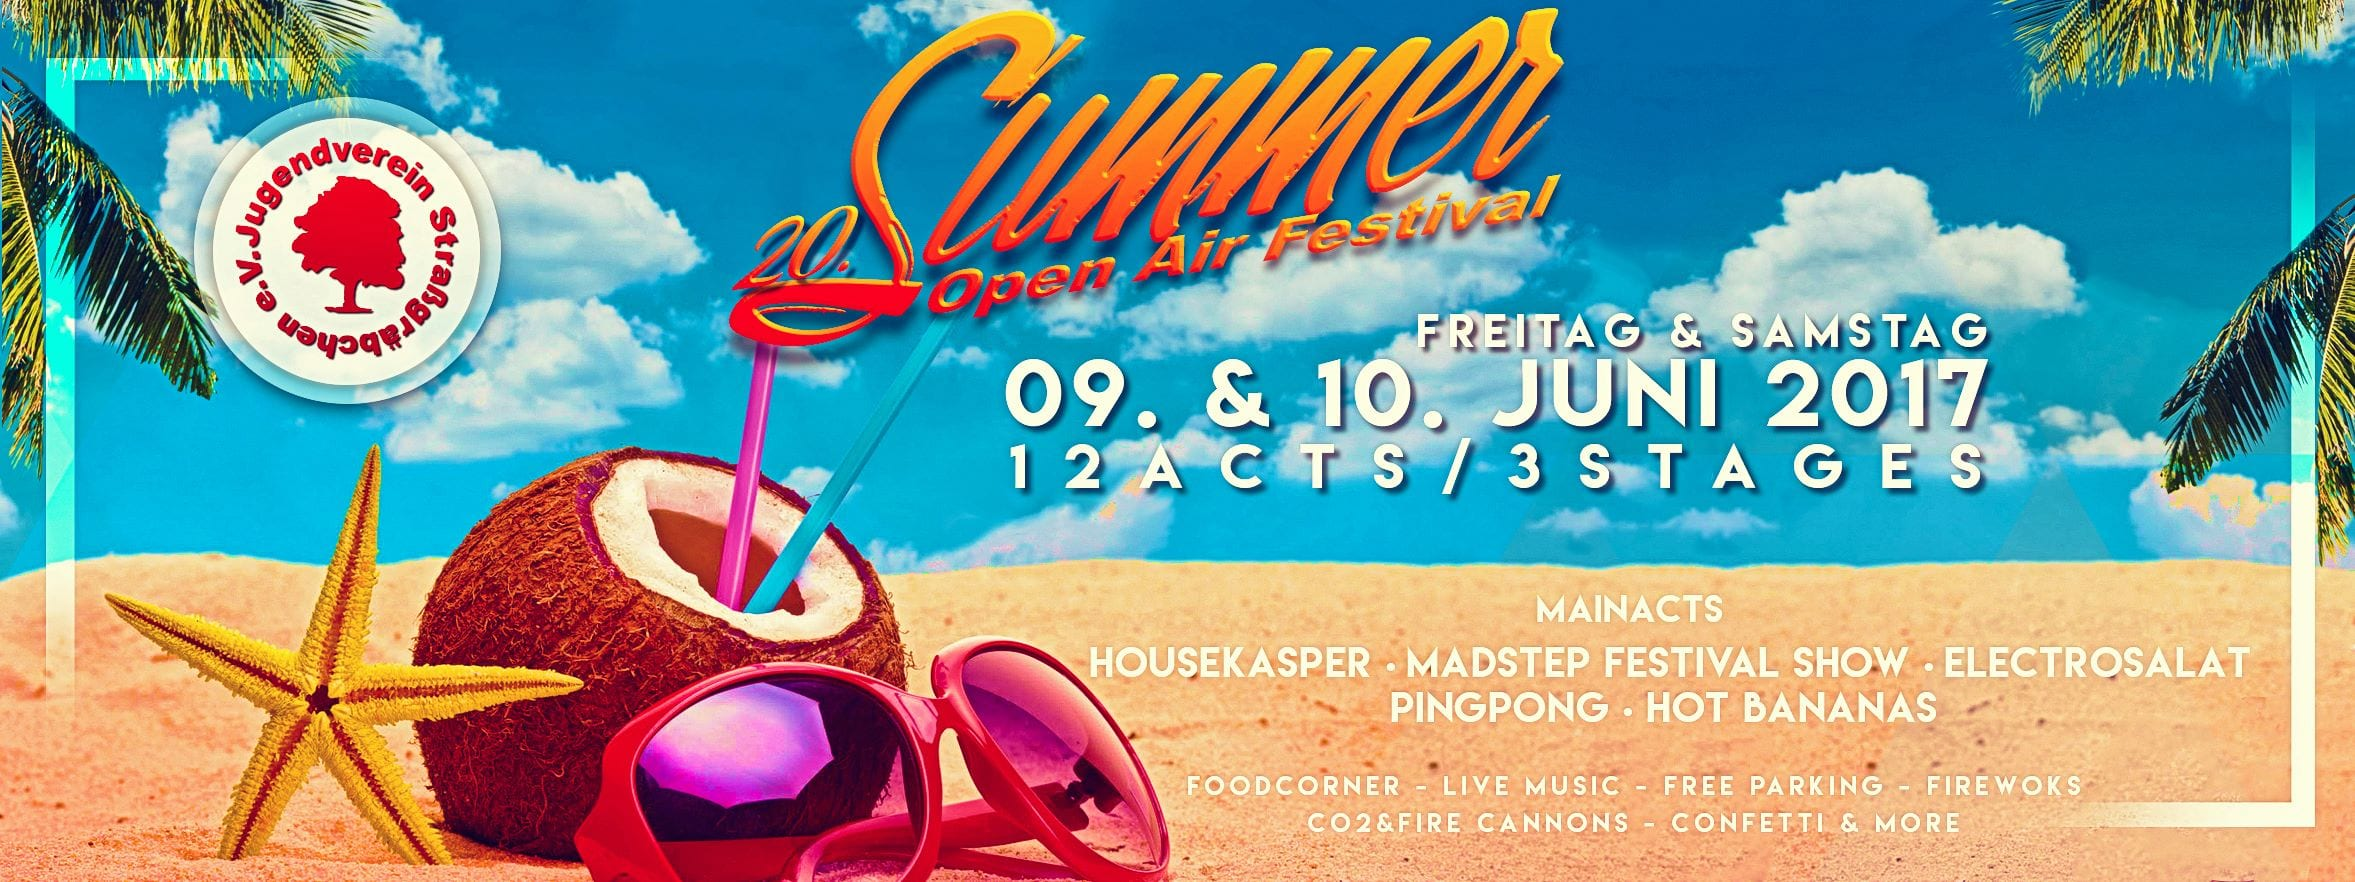 Summer Open Air